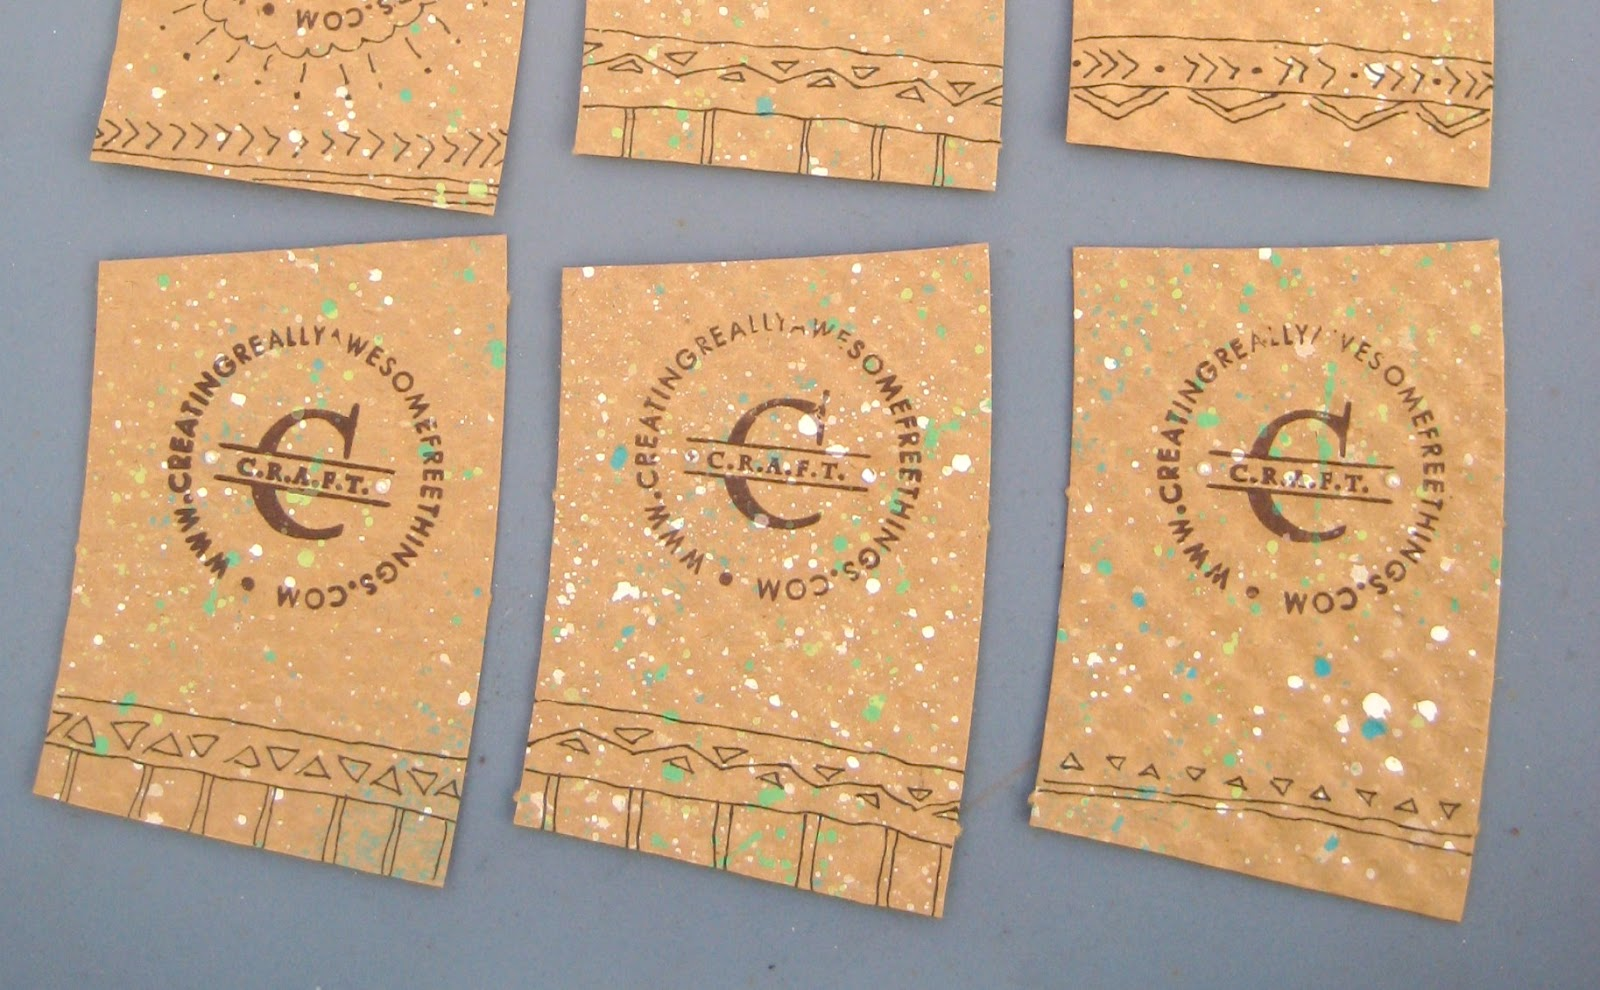 Coffee sleeve business cards craft diy business cards reheart Choice Image